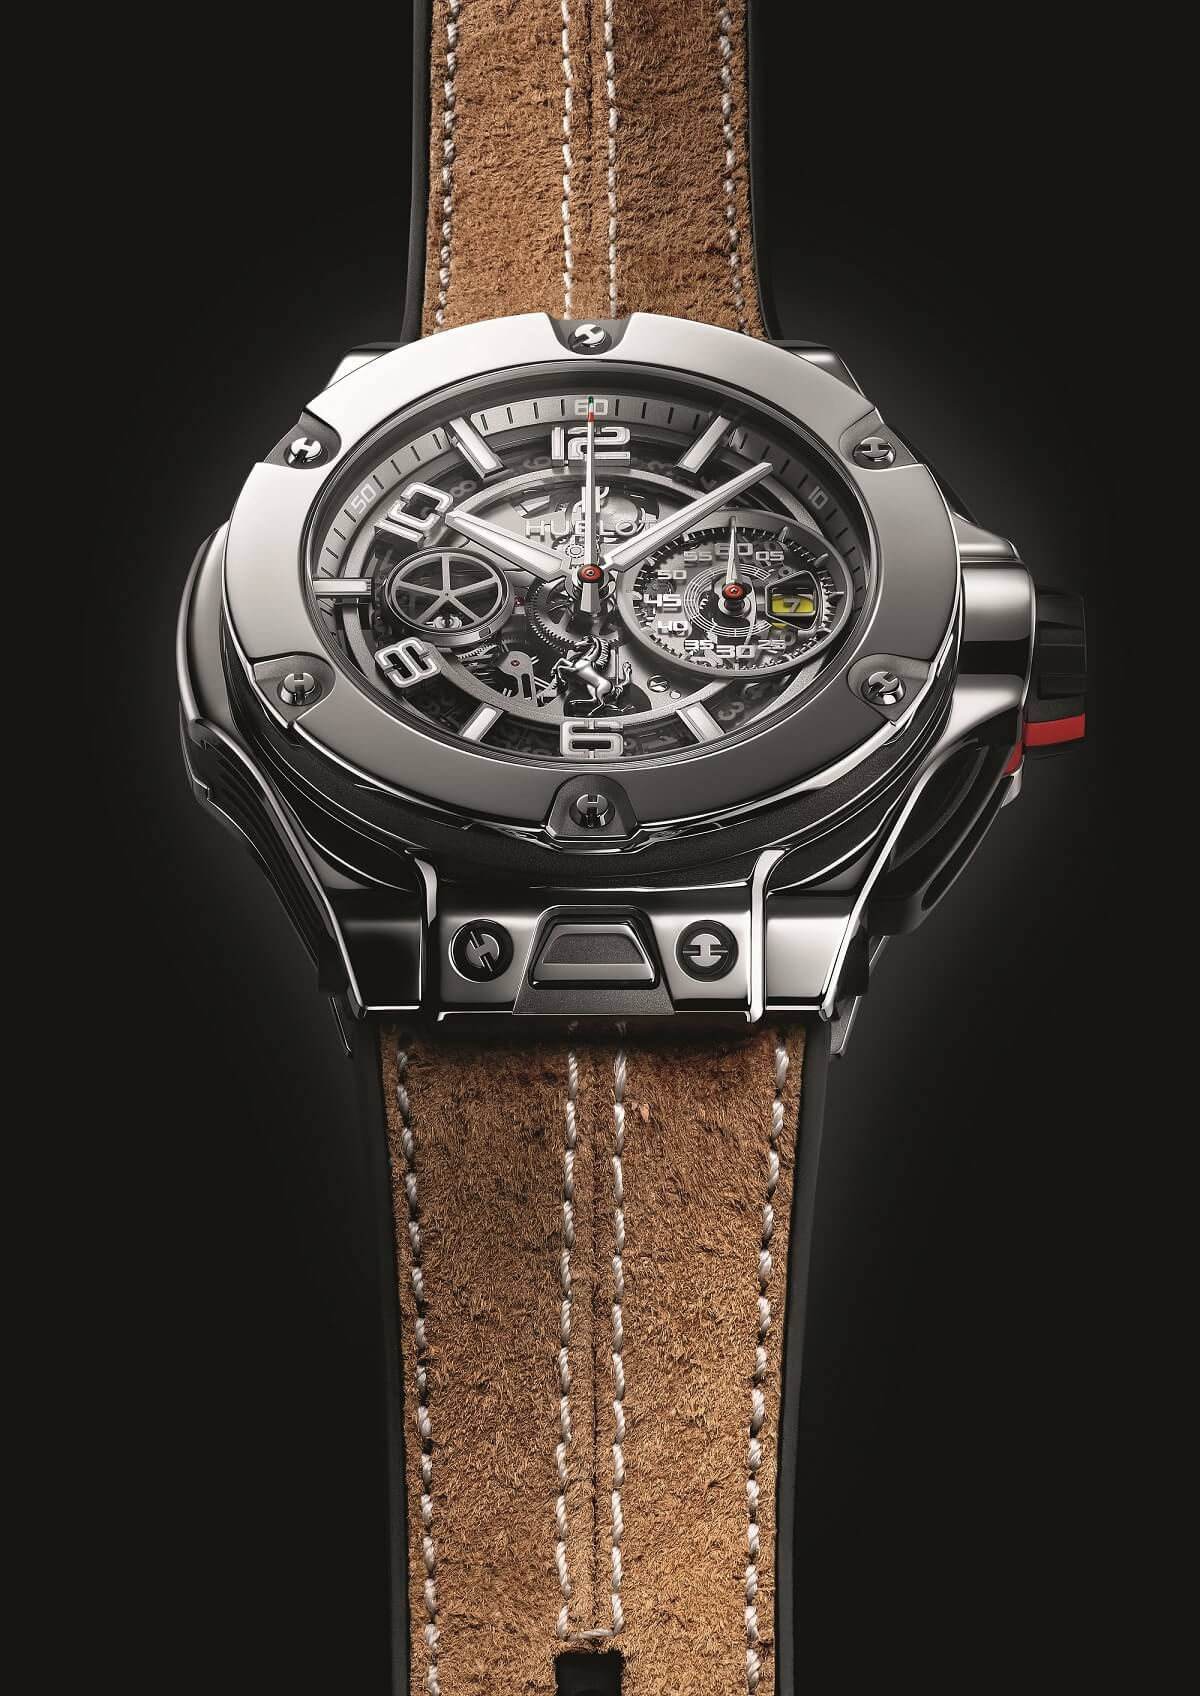 HUBLOT-BIG-BANG-Ferrari-1000-GP-4.jpg